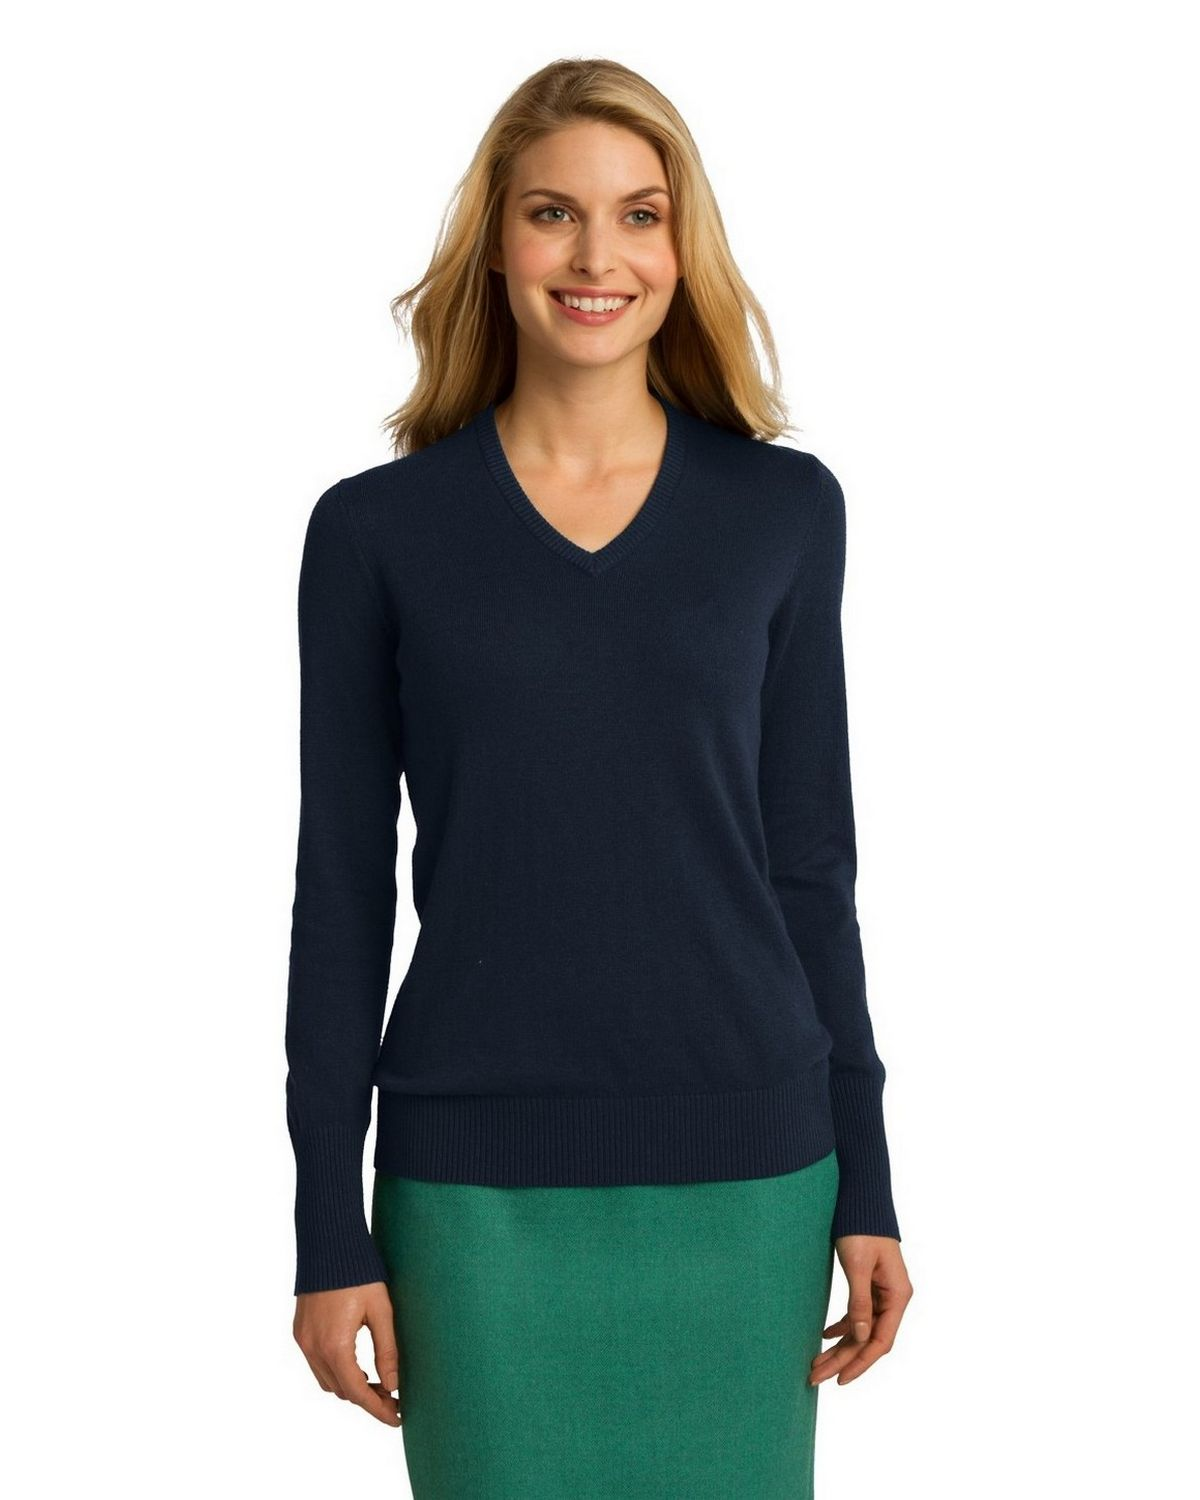 Port Authority LSW285 Women's Sweater - Navy - XS from Port Authority